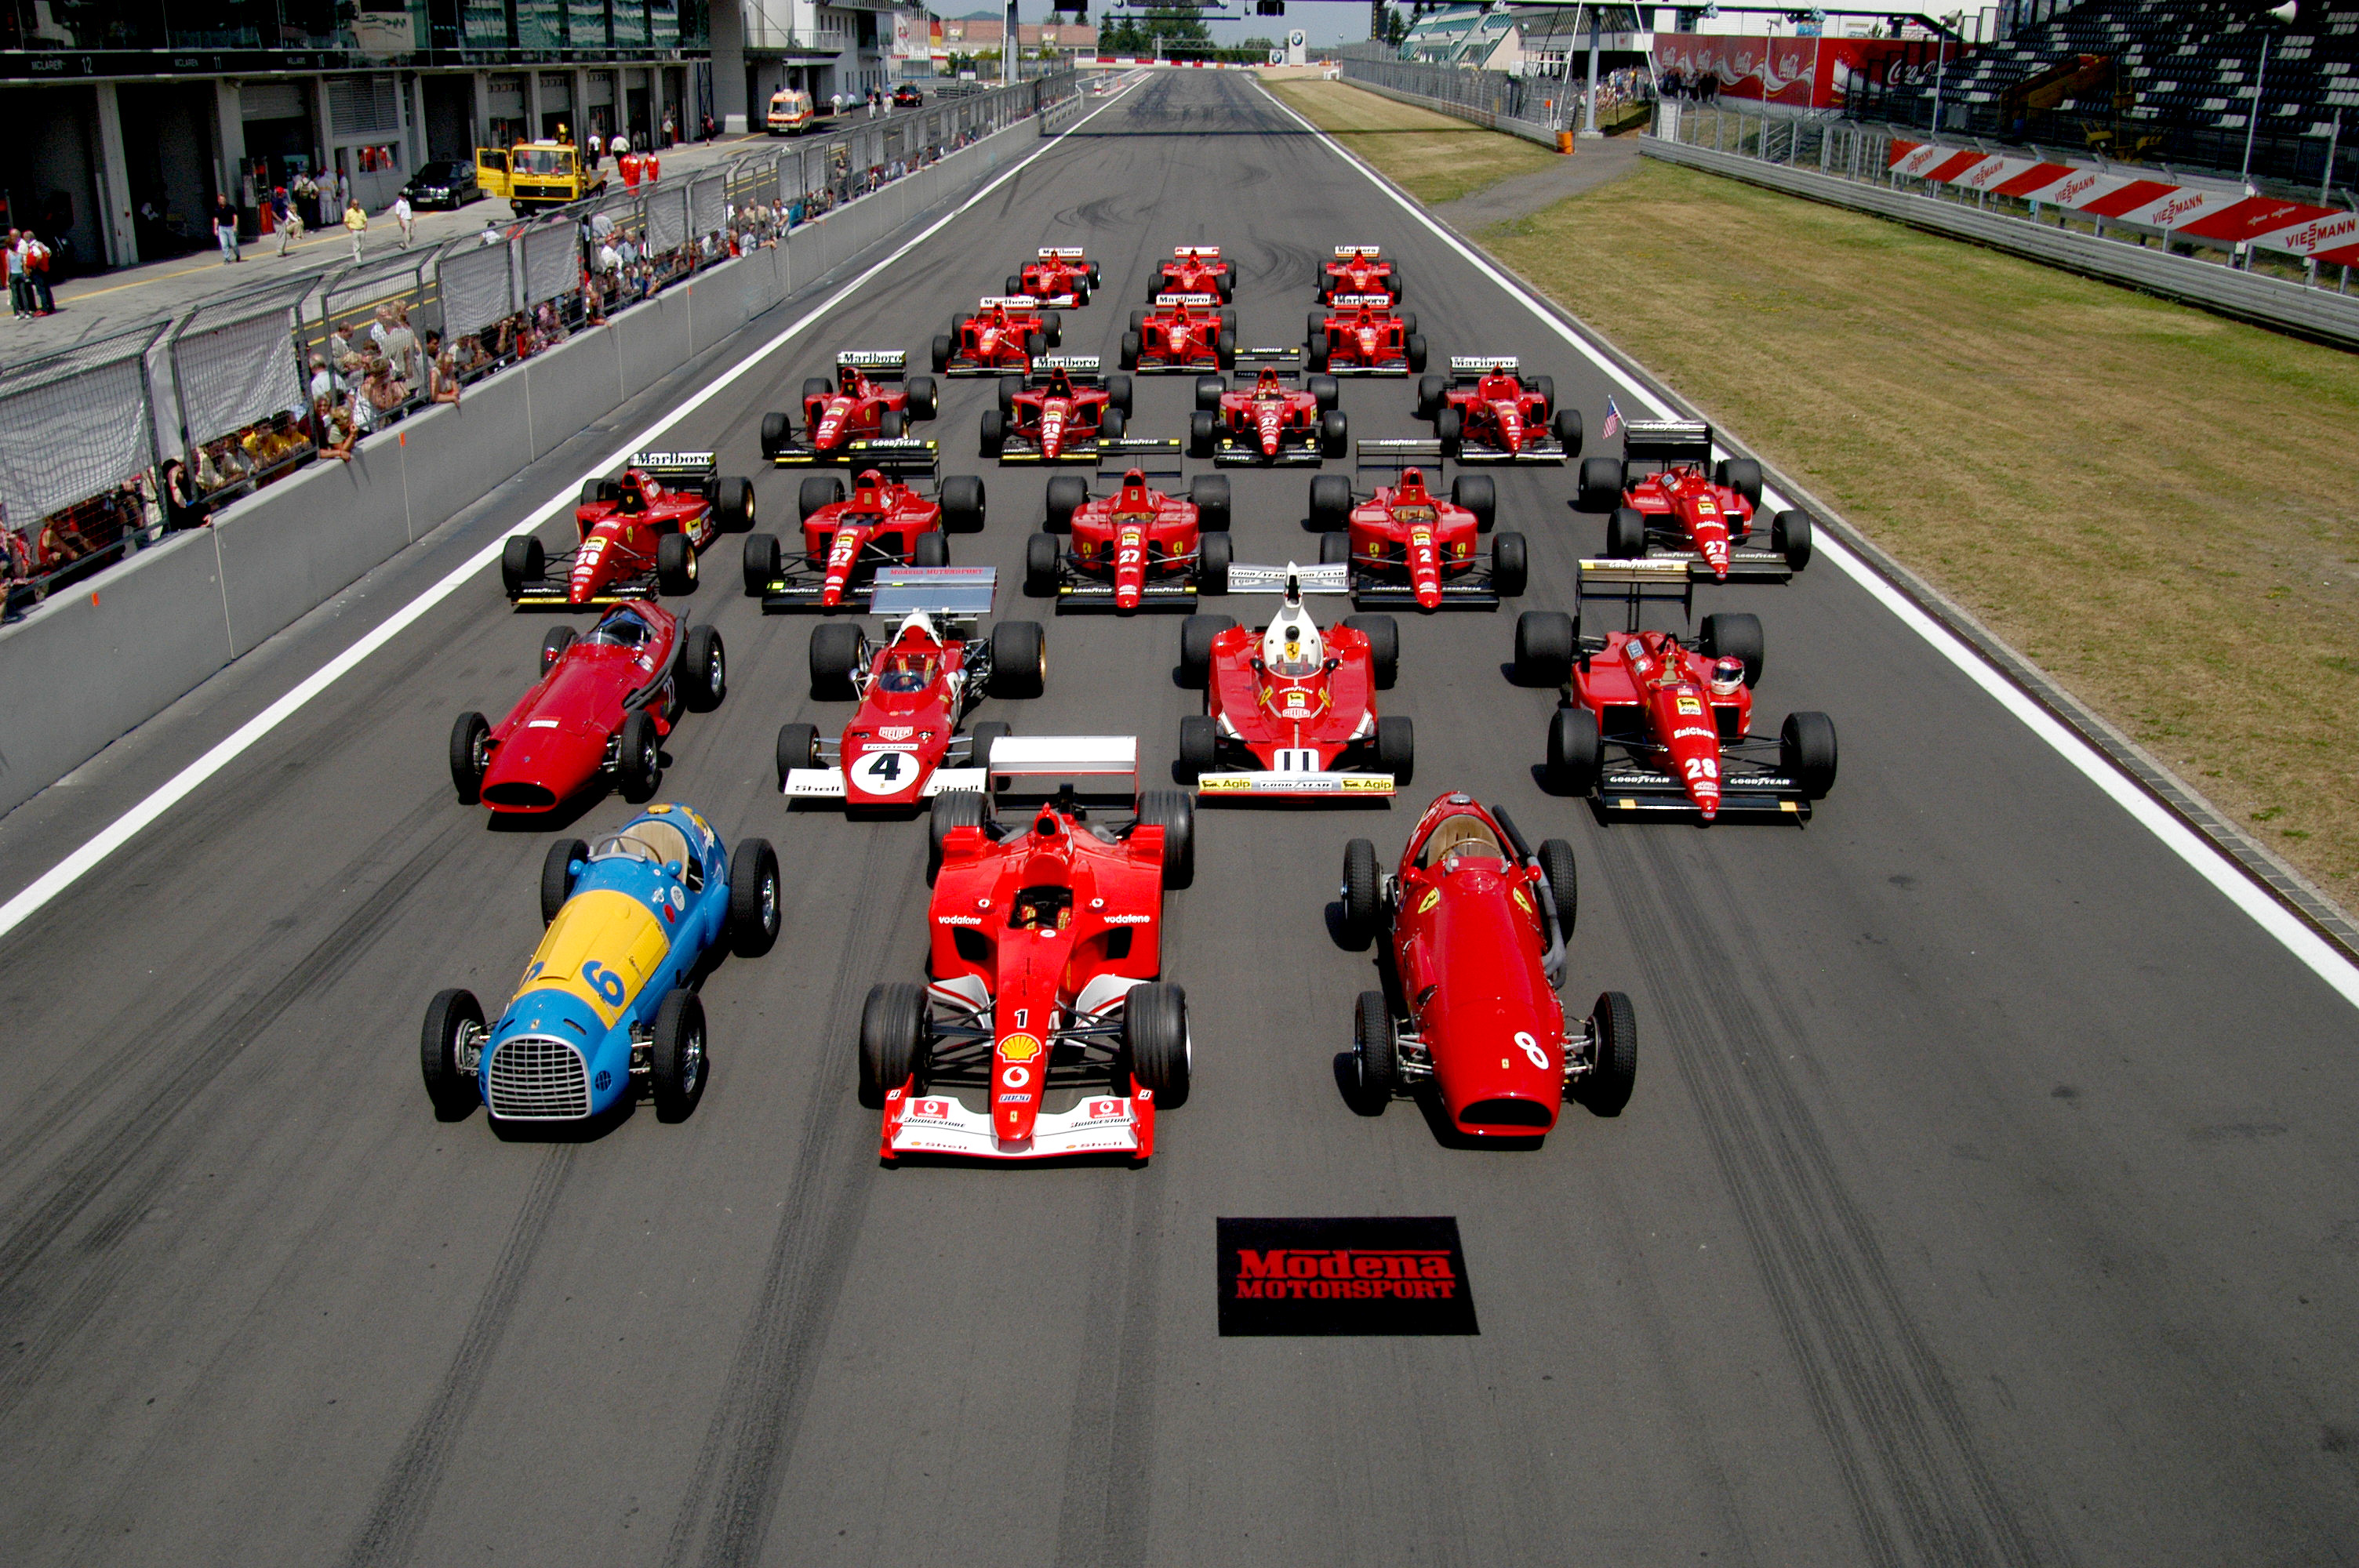 ferrari_formula_1_lineup_at_the_nurburgring.jpg